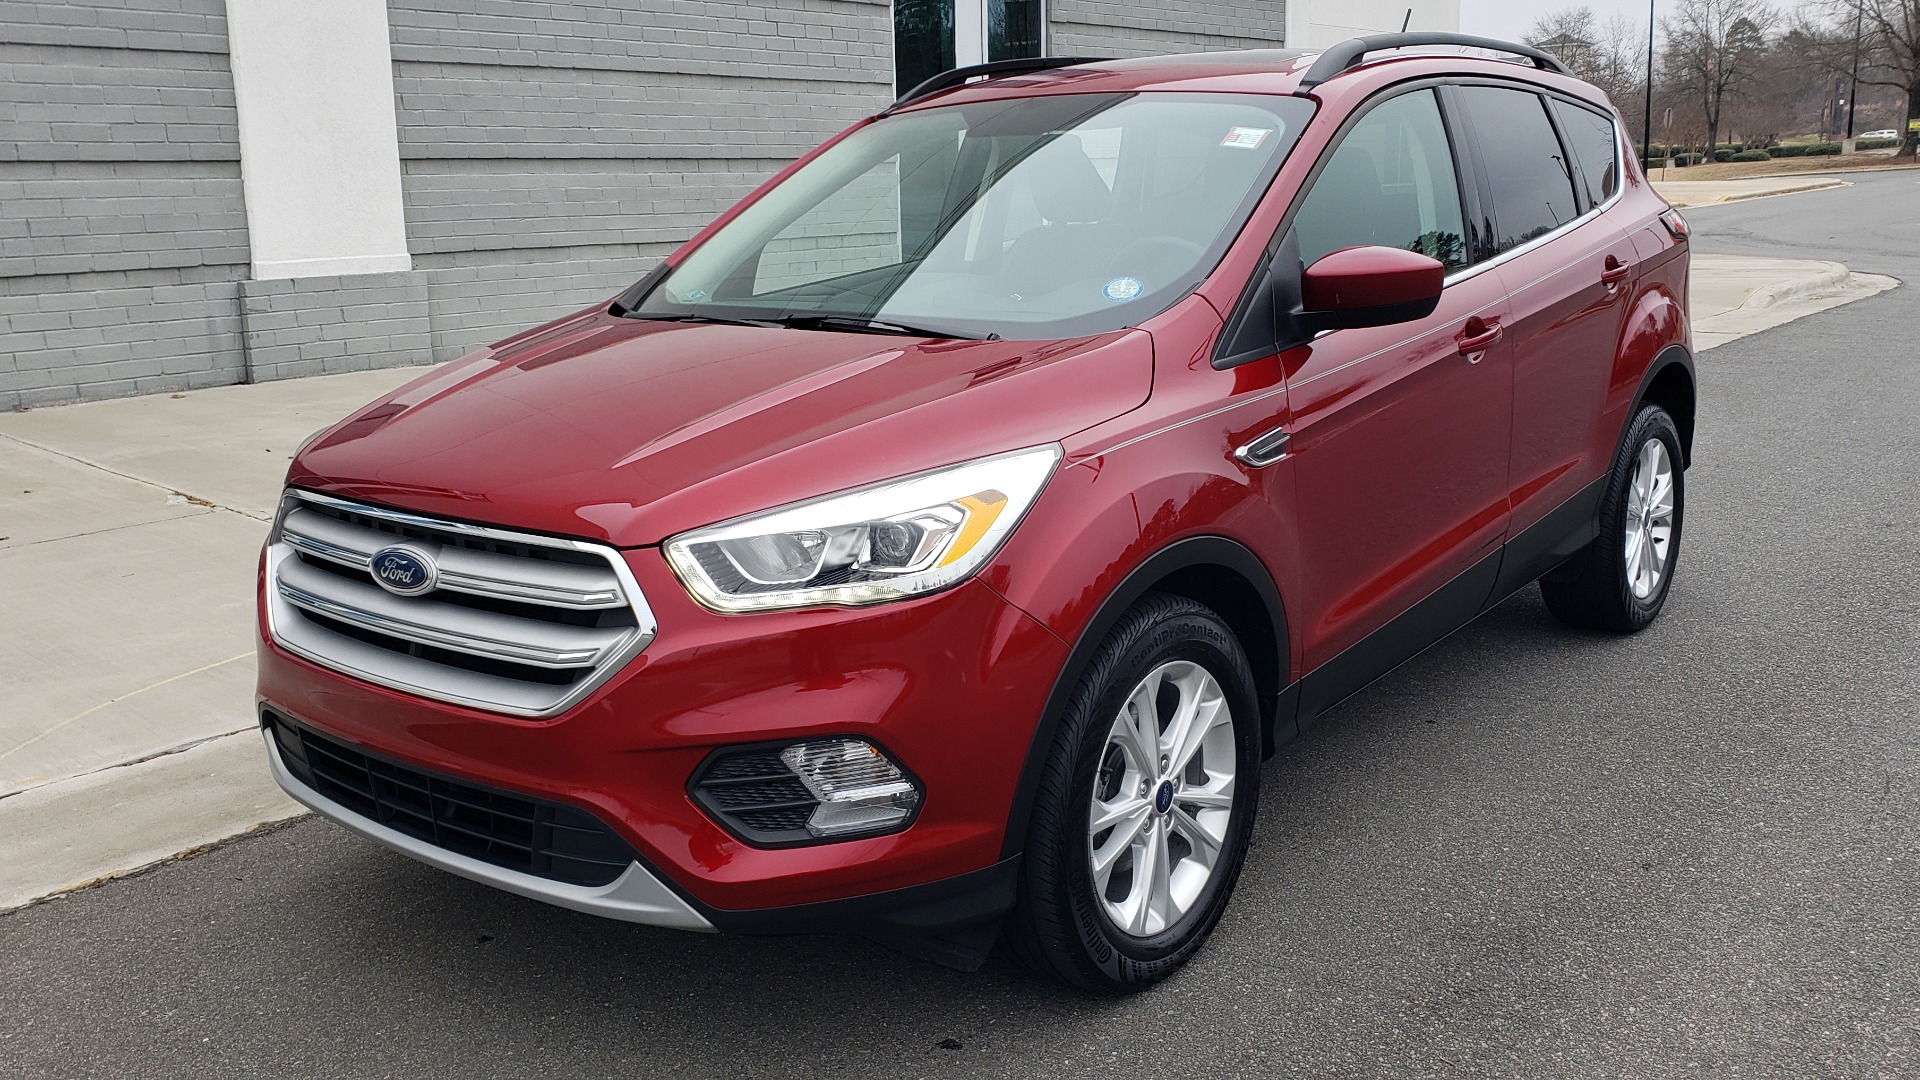 Used 2018 Ford ESCAPE SEL / FWD / 1.5L ECOBOOST / PANO-ROOF / REARVIEW for sale Sold at Formula Imports in Charlotte NC 28227 3